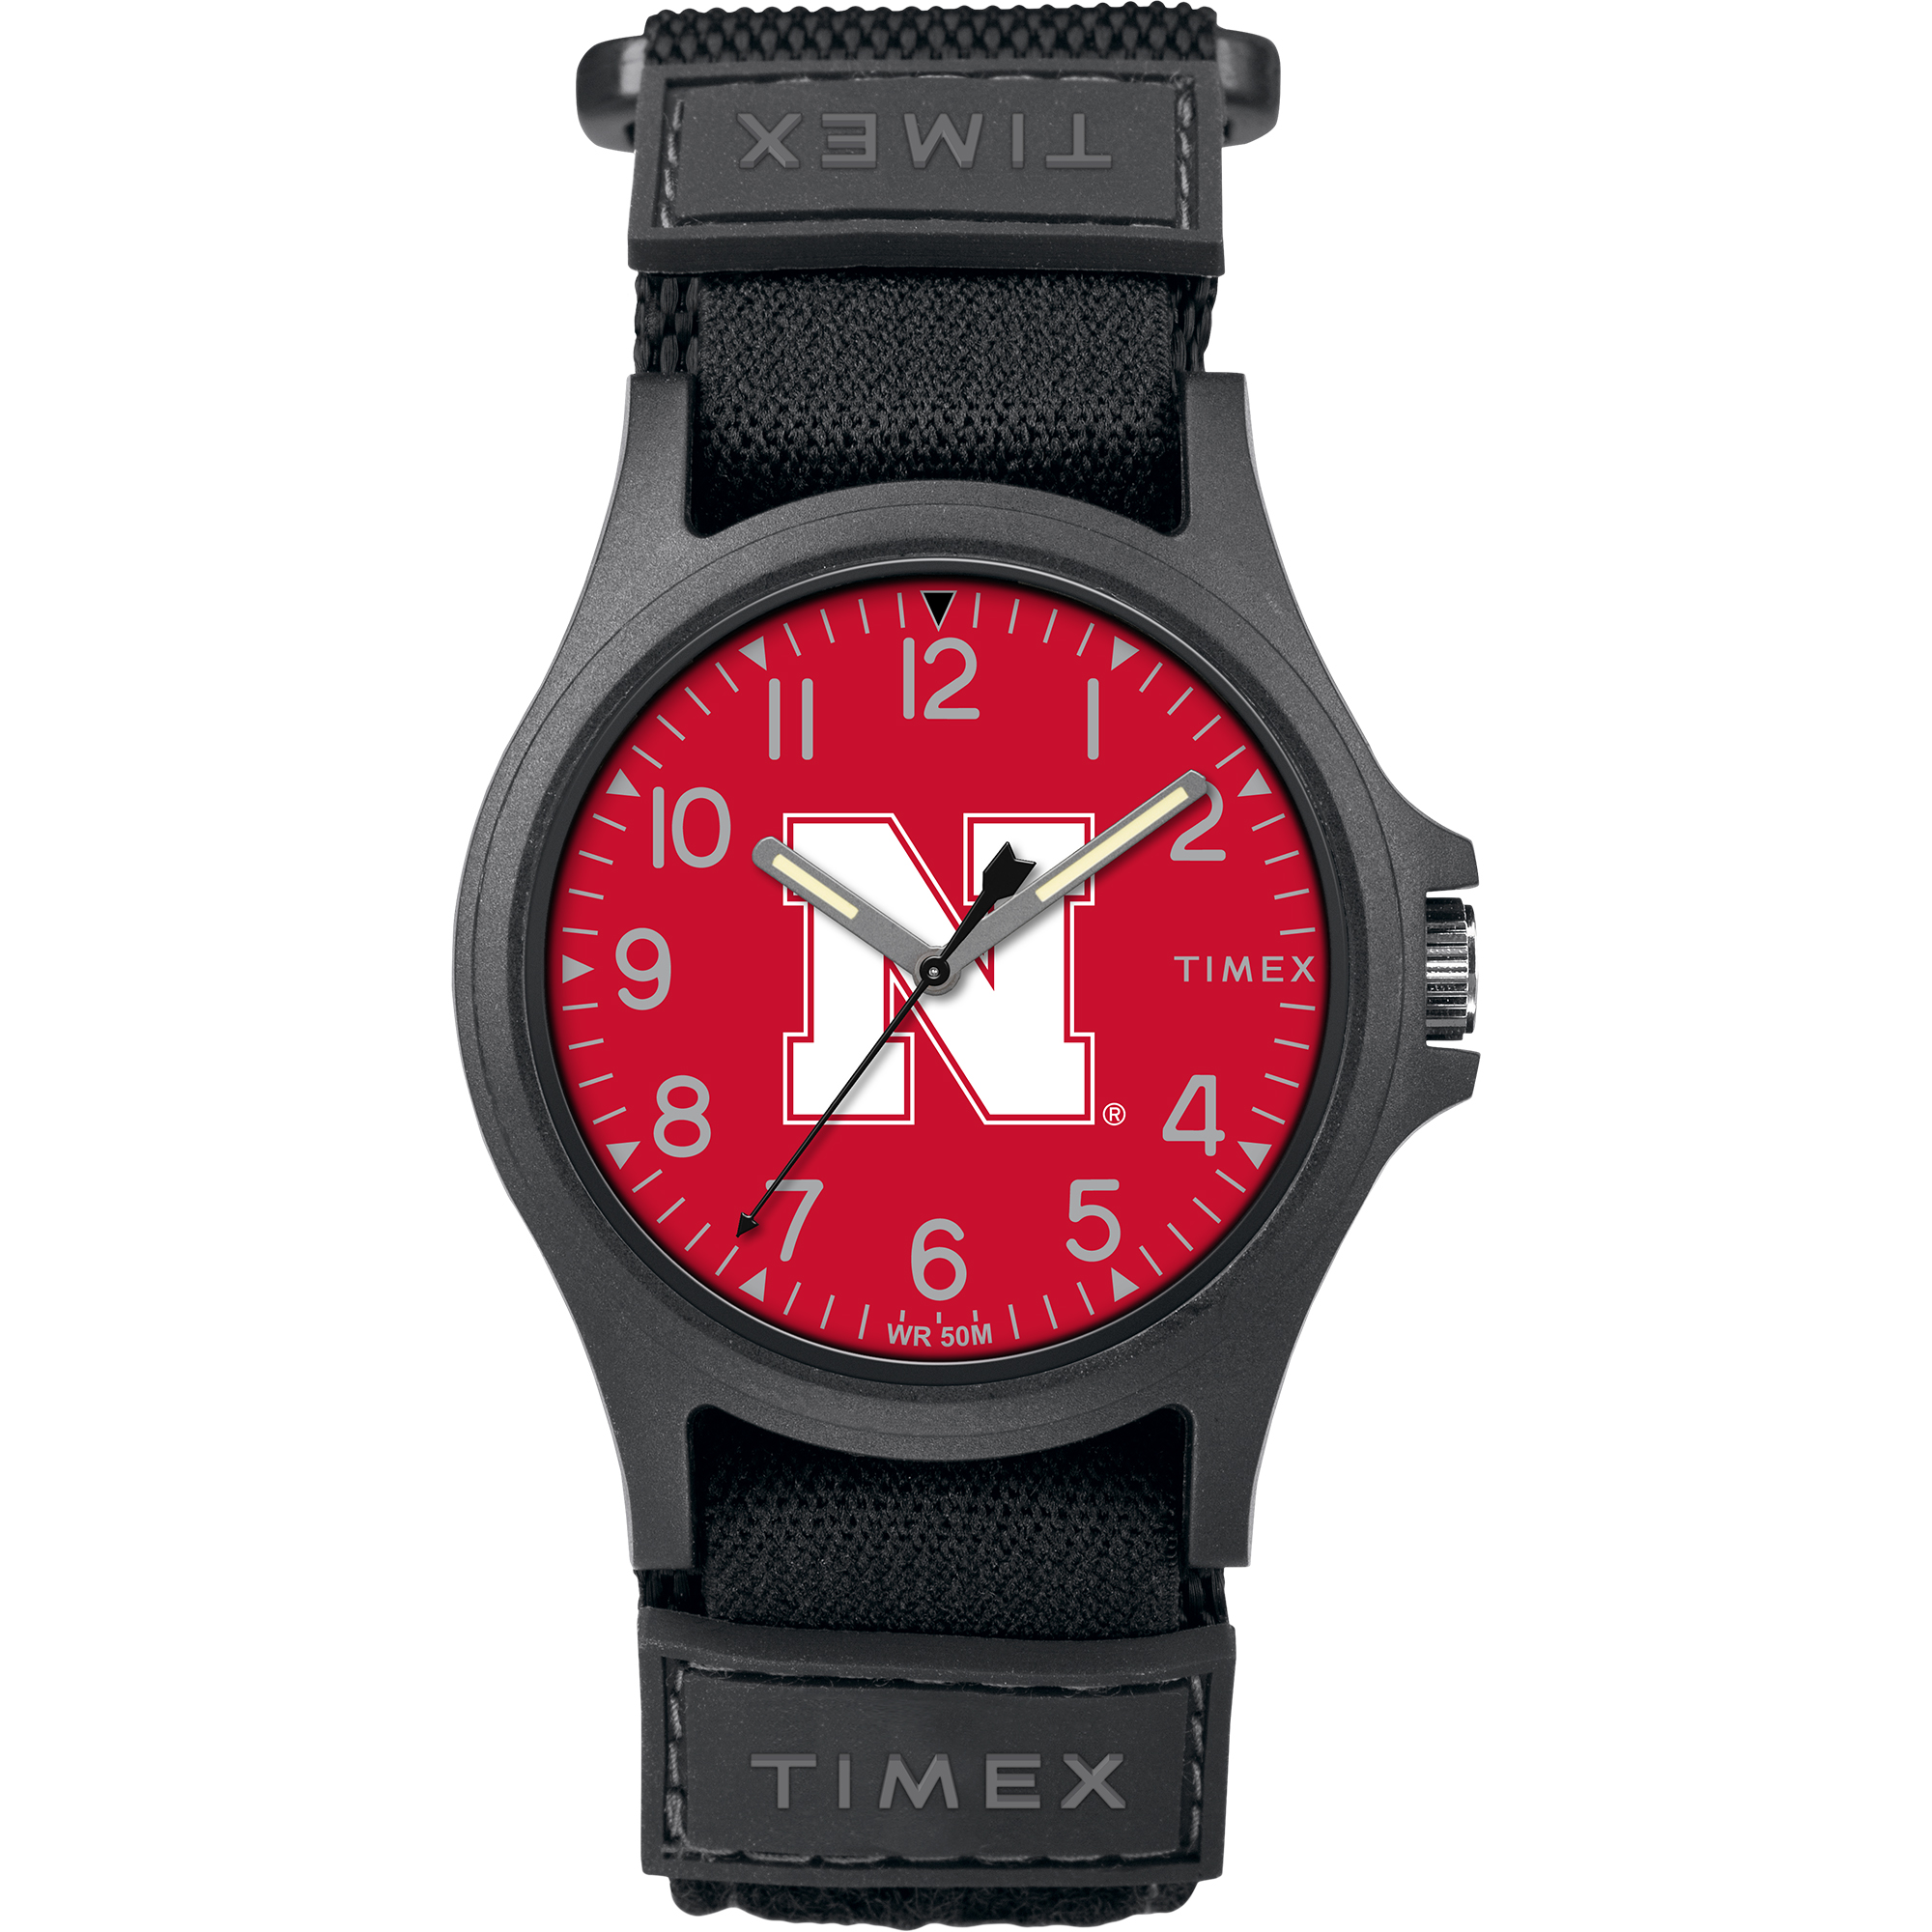 Timex - NCAA Tribute Collection Pride Men's Watch, University of Nebraska Cornhuskers